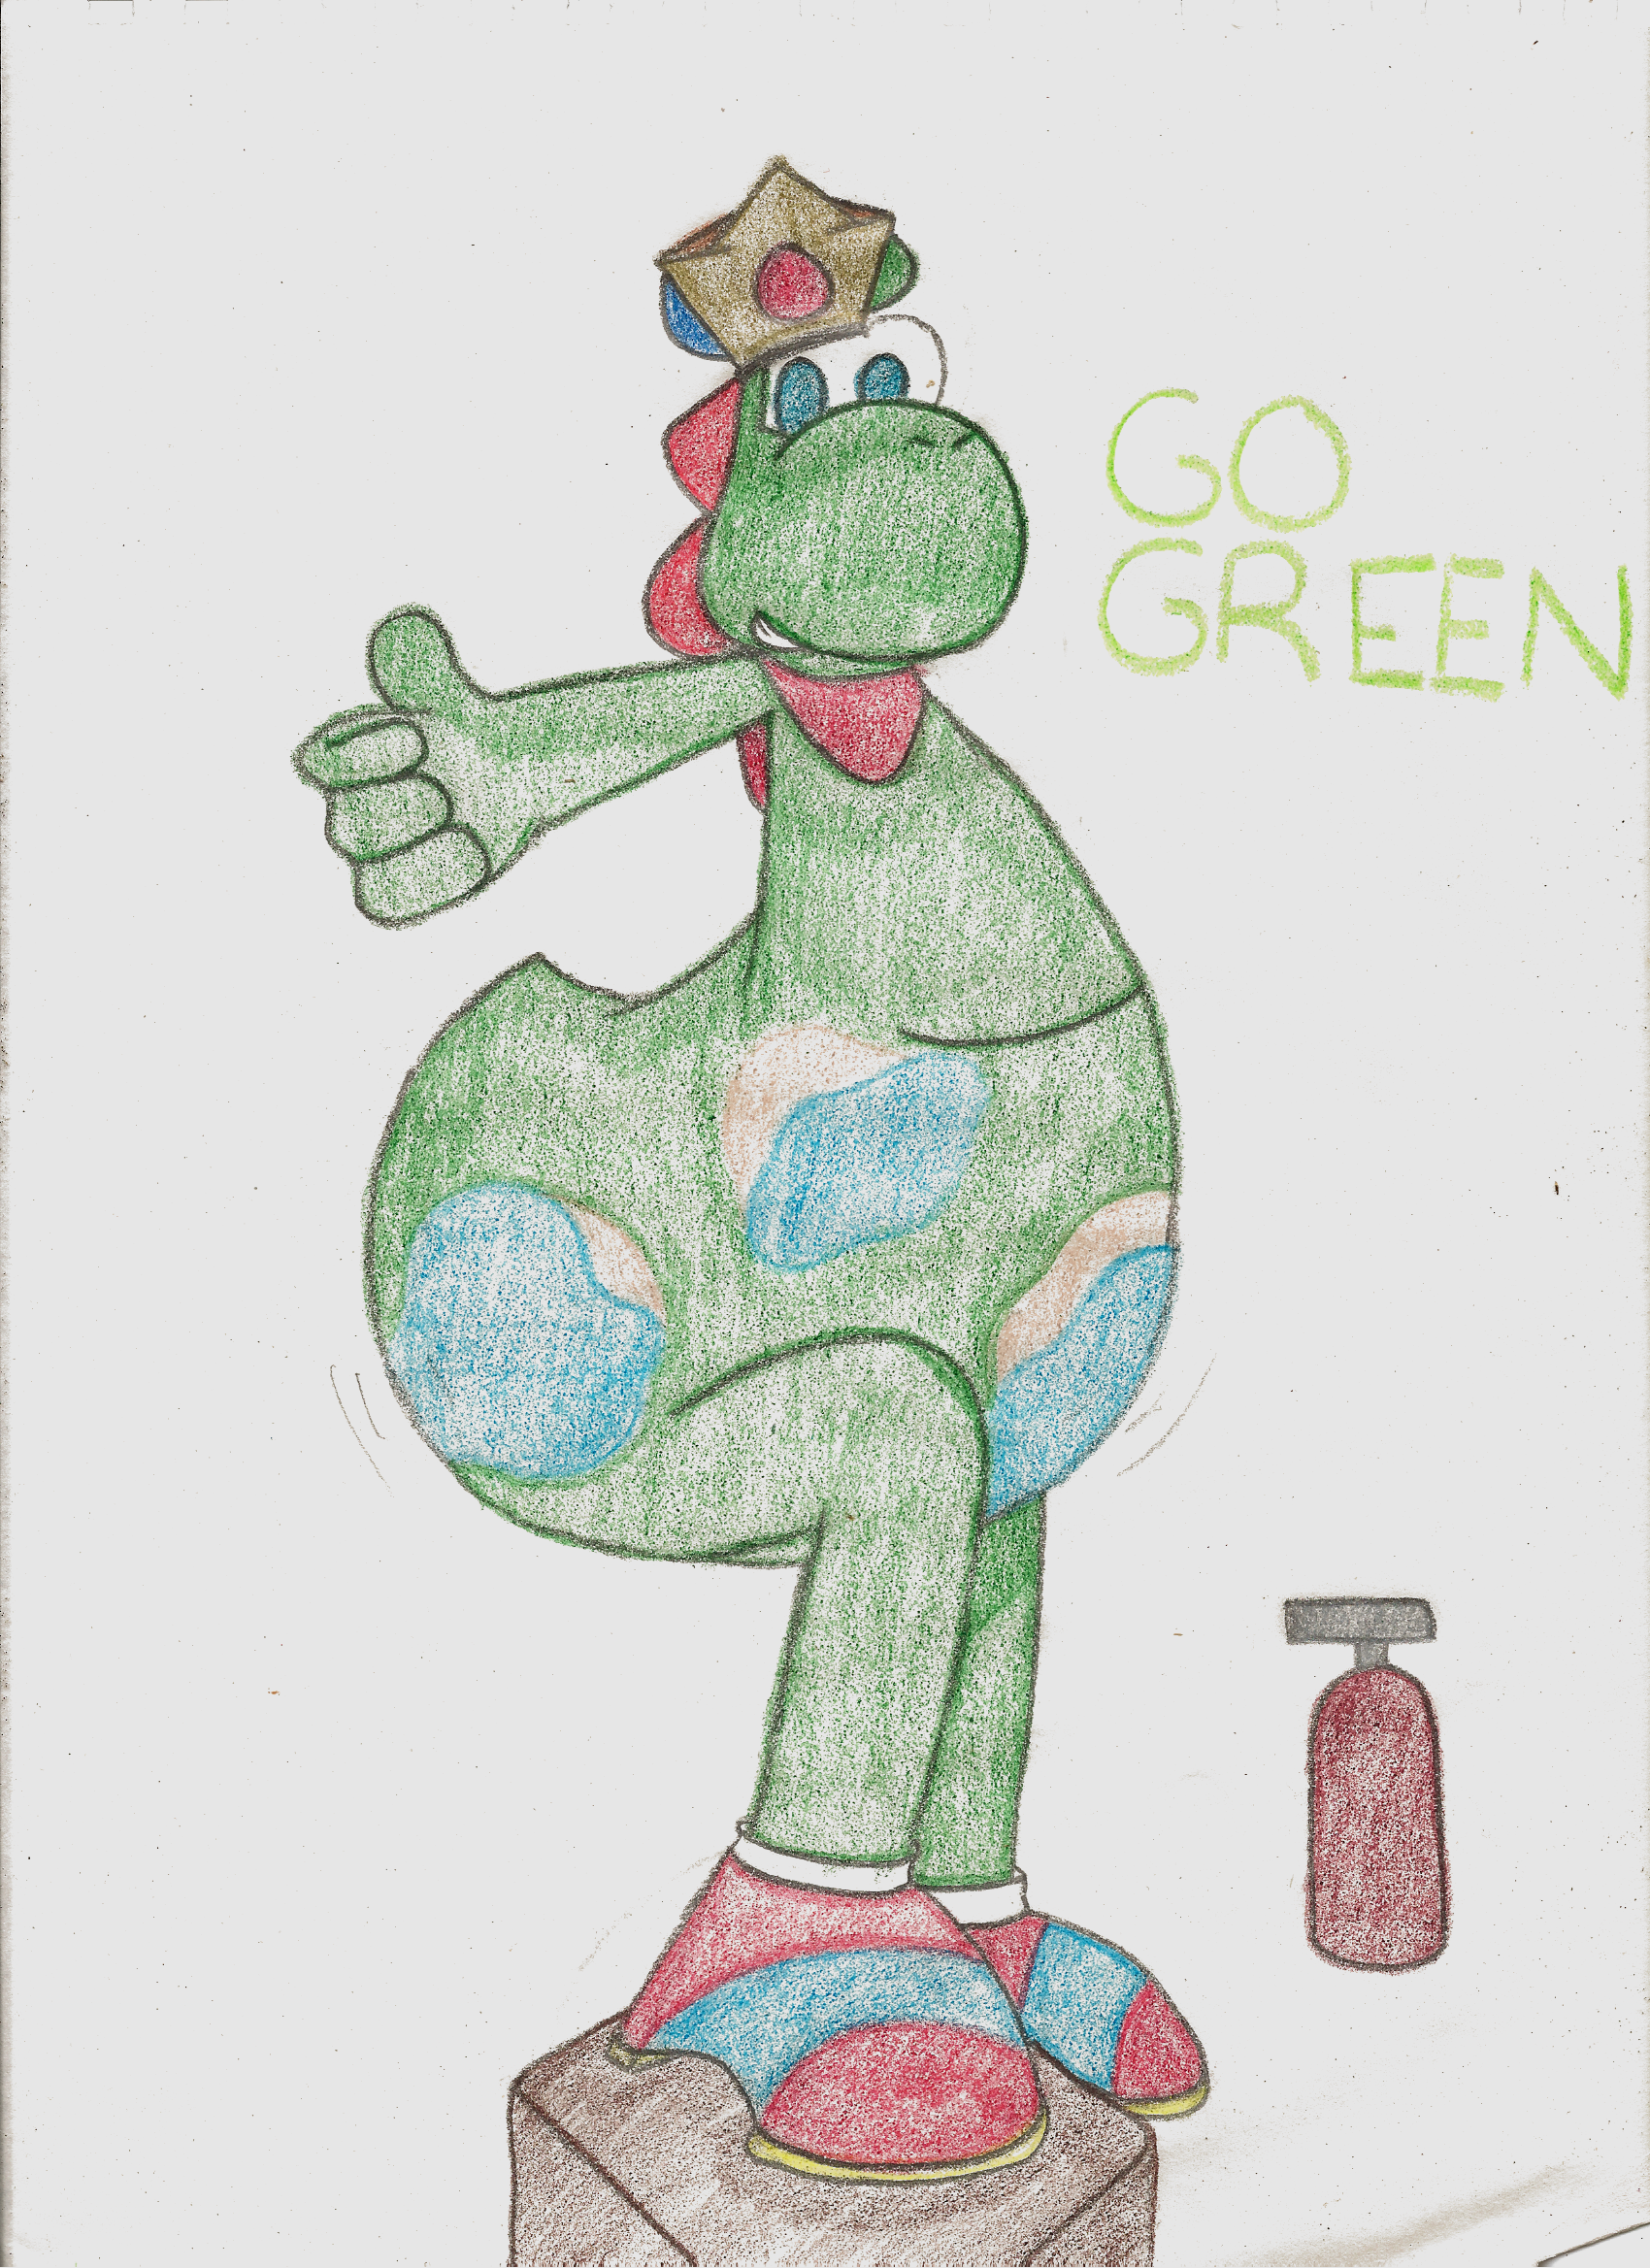 Go Green by iKYLE